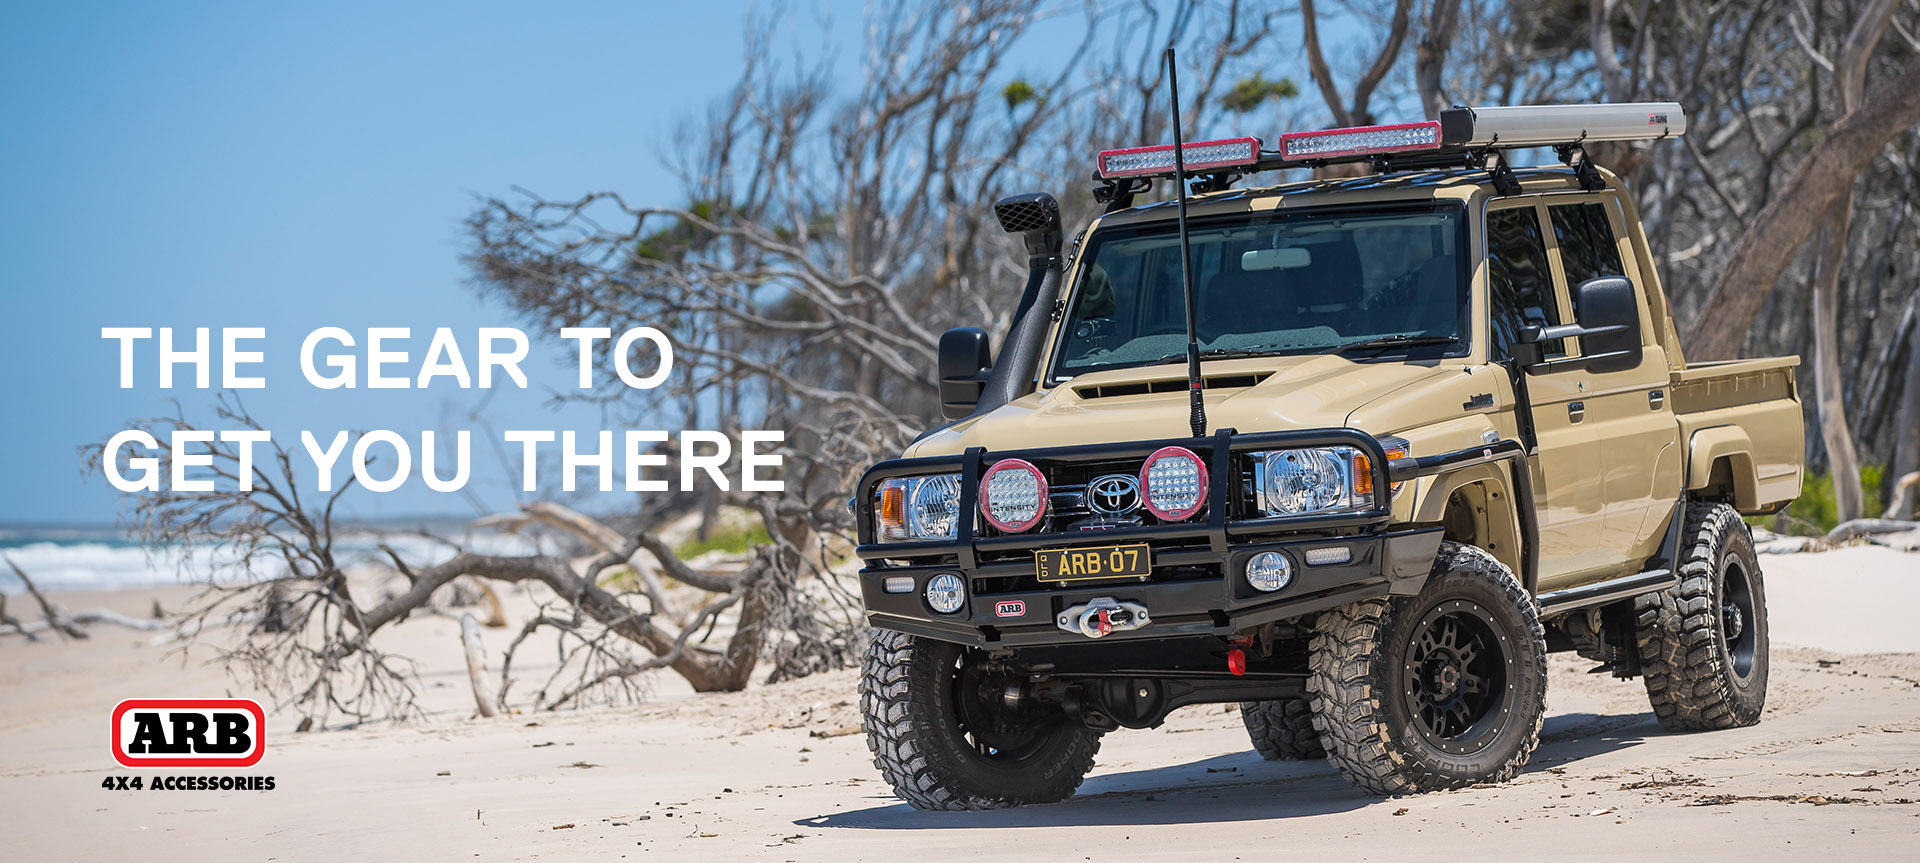 ARB Accessories to get you out there